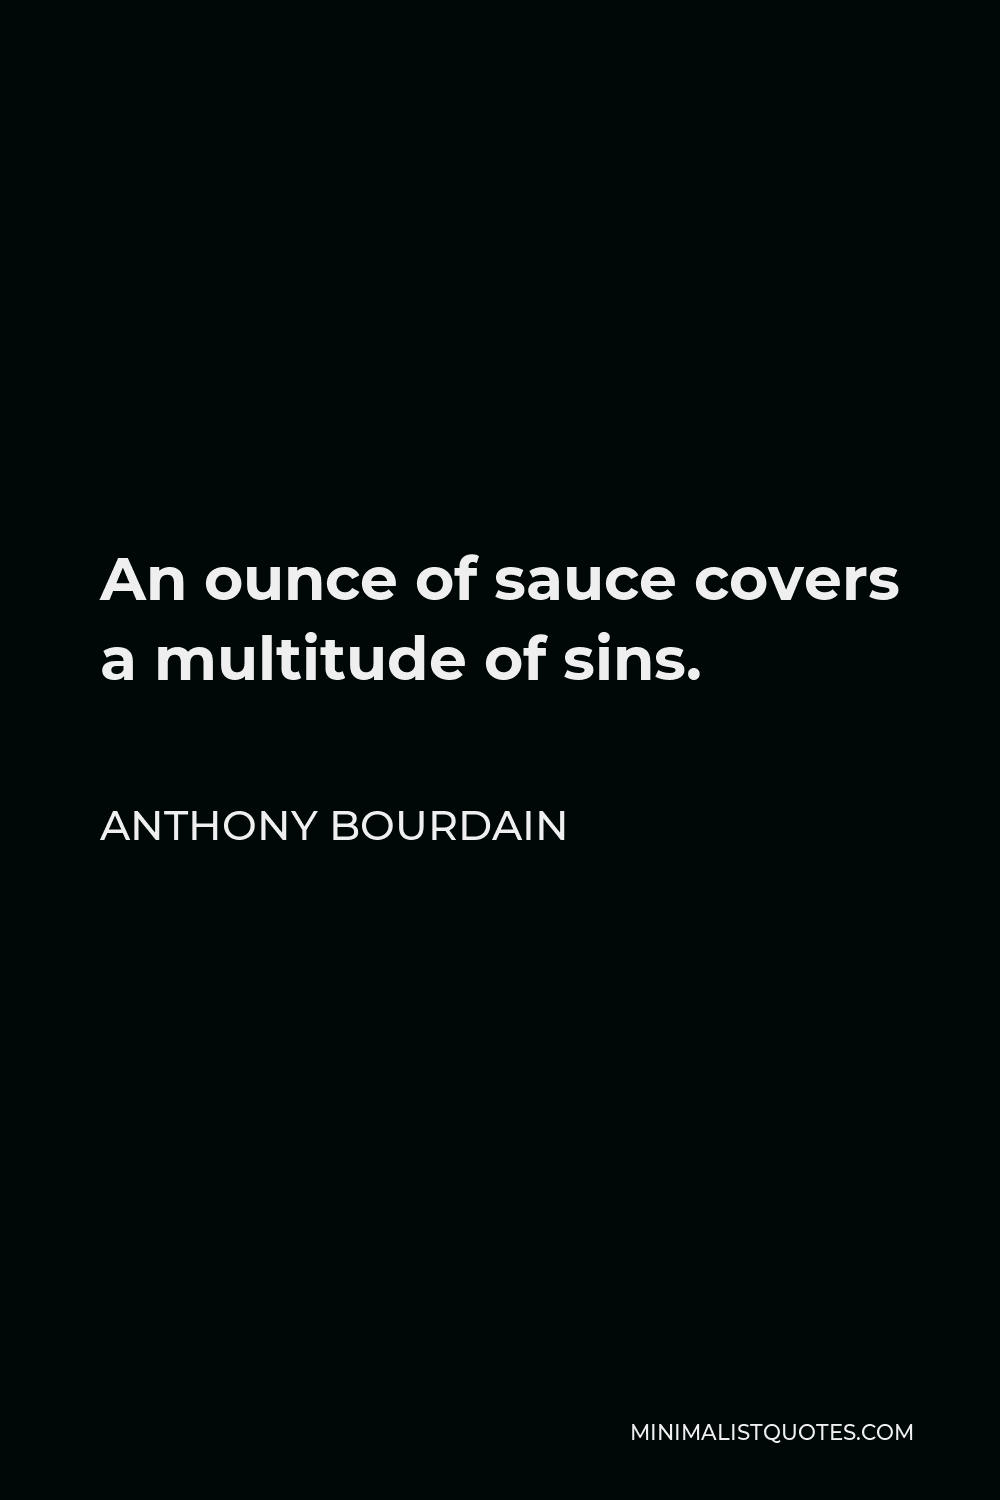 Anthony Bourdain Quote - An ounce of sauce covers a multitude of sins.